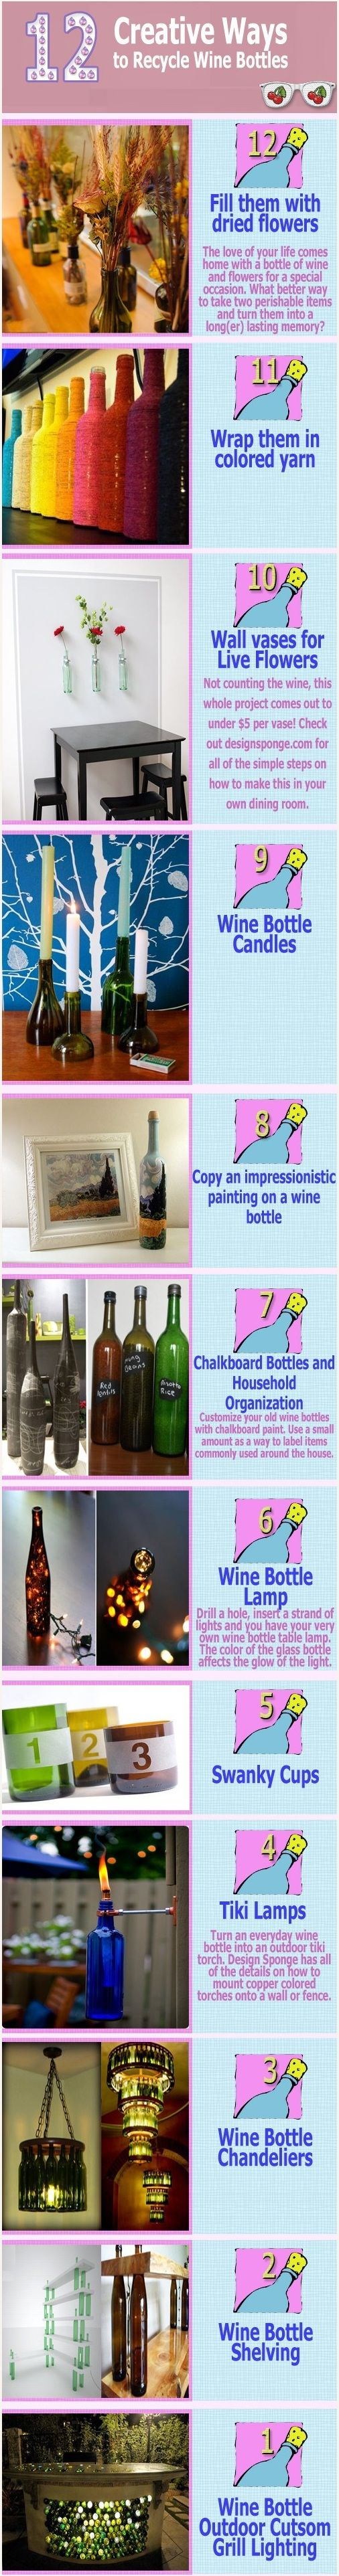 Recycle wine bottles wine cork barrels bottles for Recycling wine bottles creatively